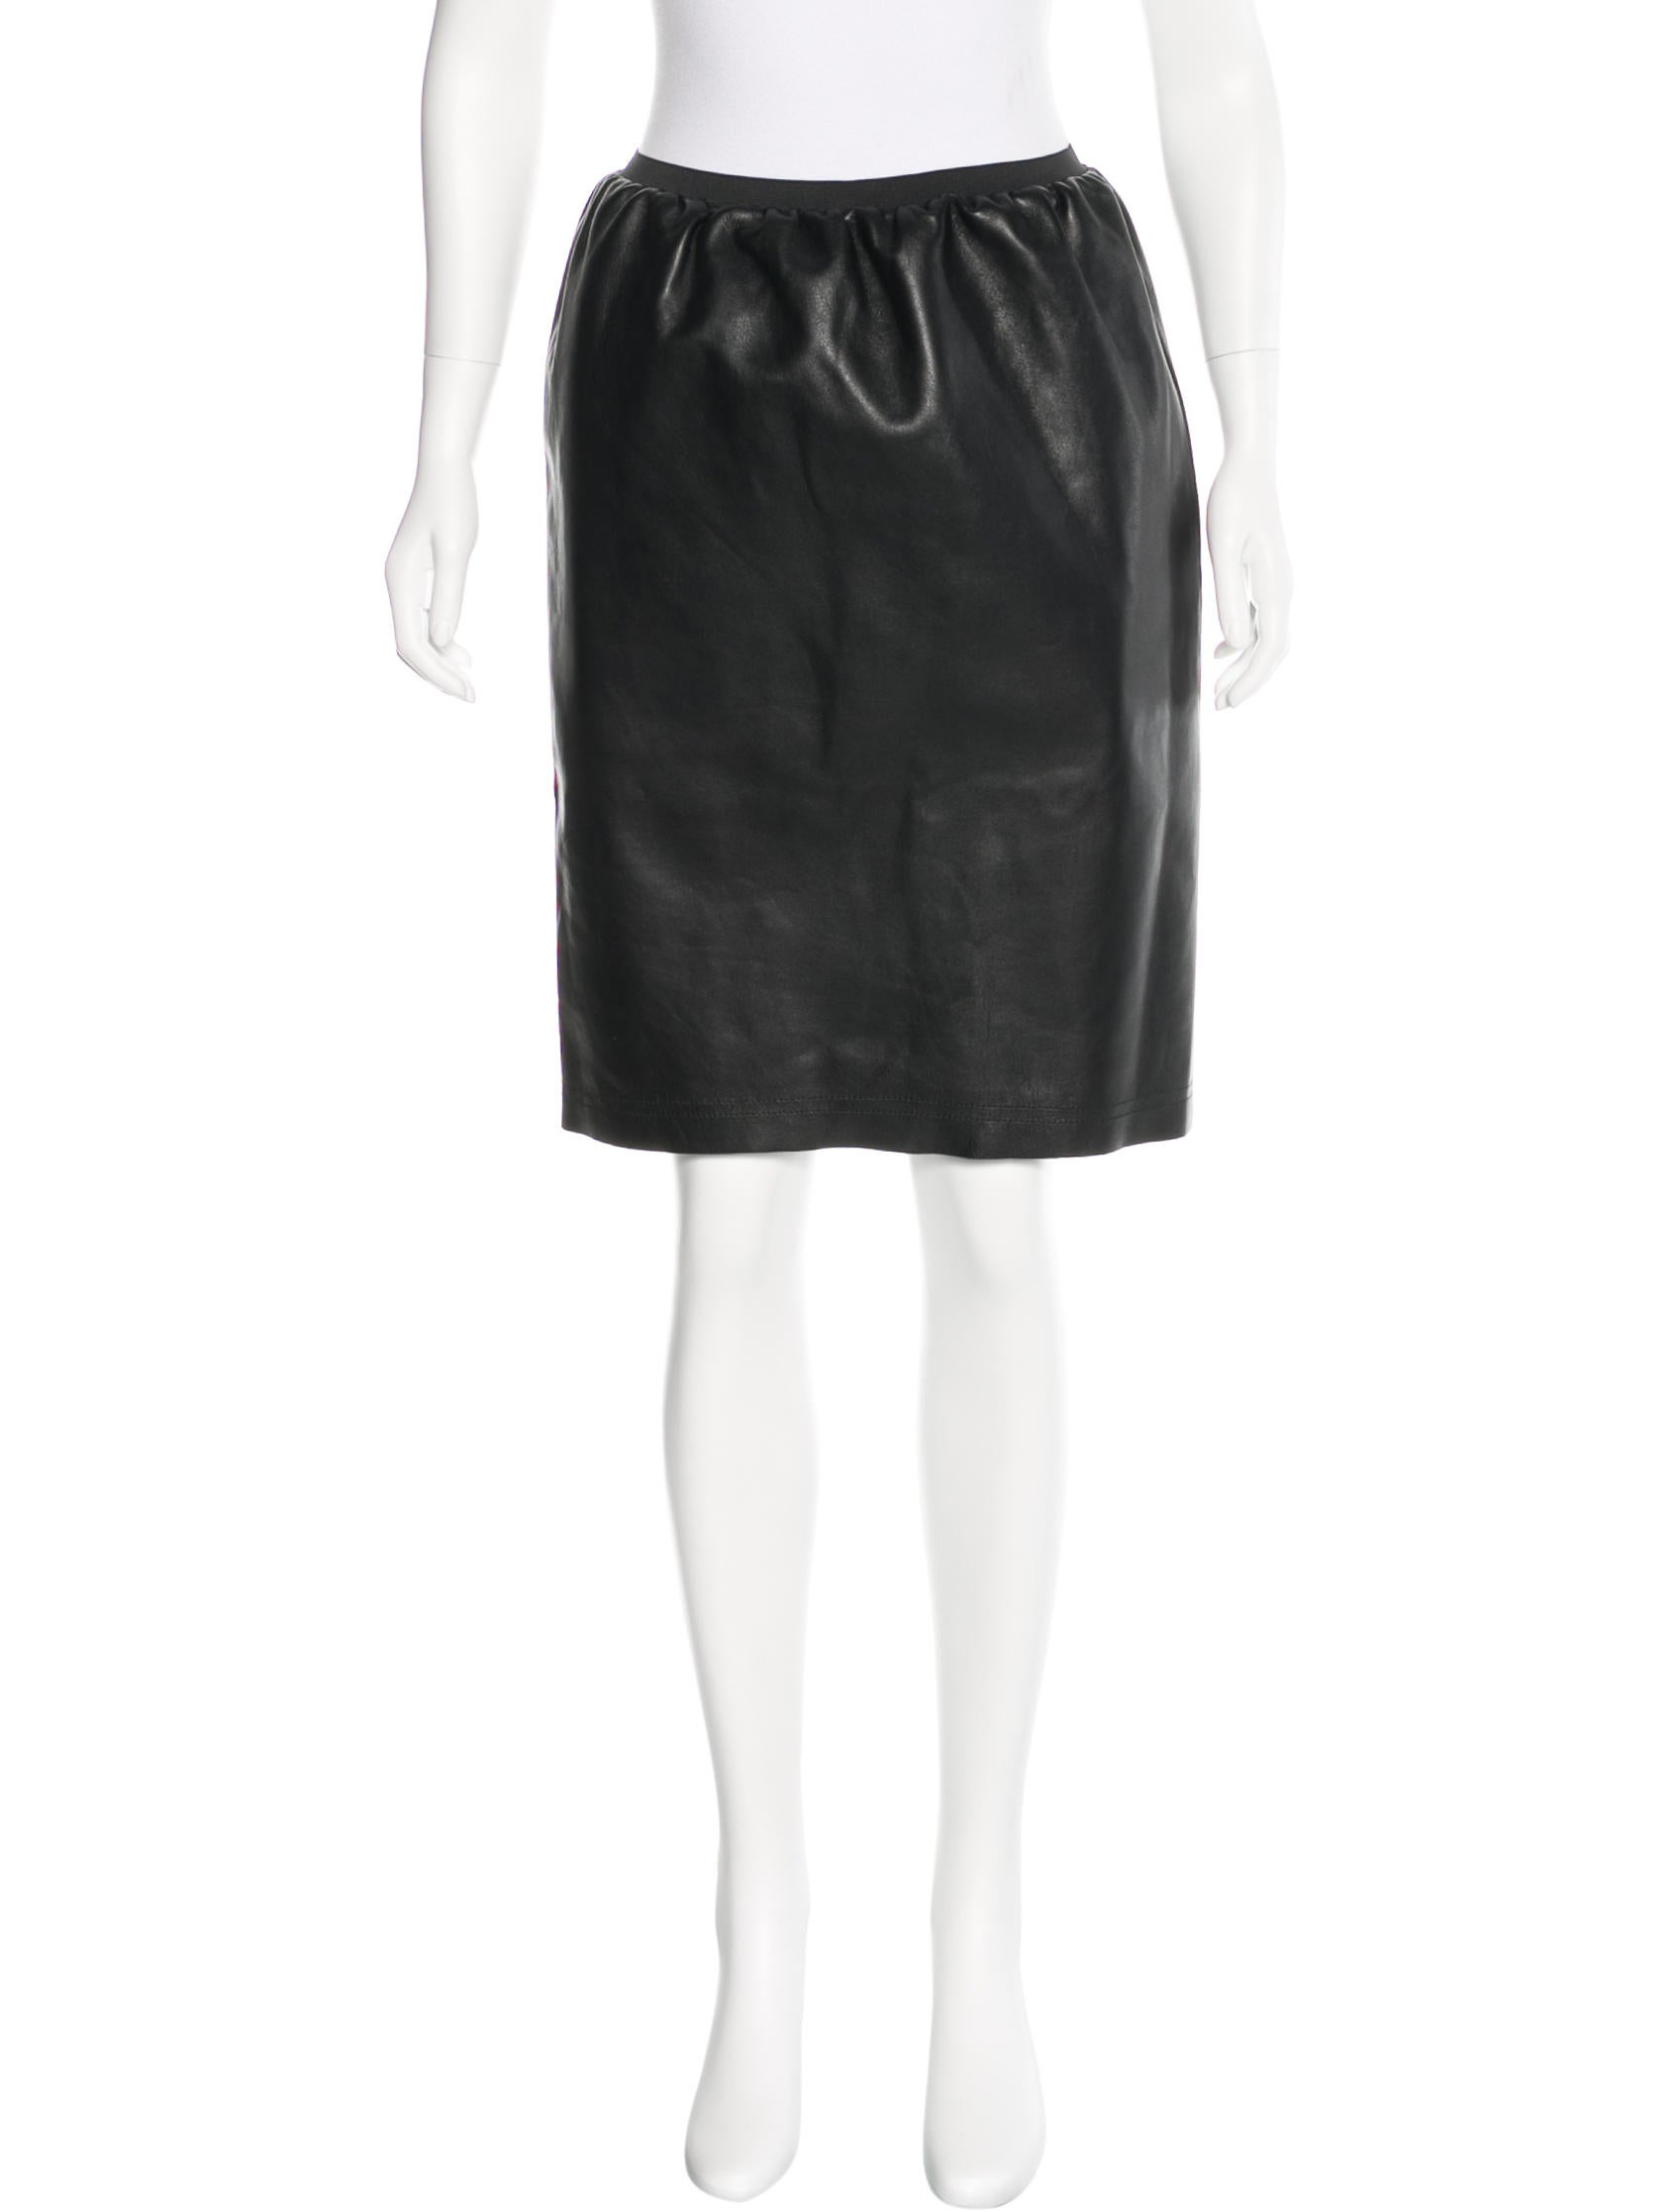 Lanvin Leather Knee-Length Skirt w/ Tags Low Shipping Sale Online Outlet Get Authentic Limit Discount tZPdvx